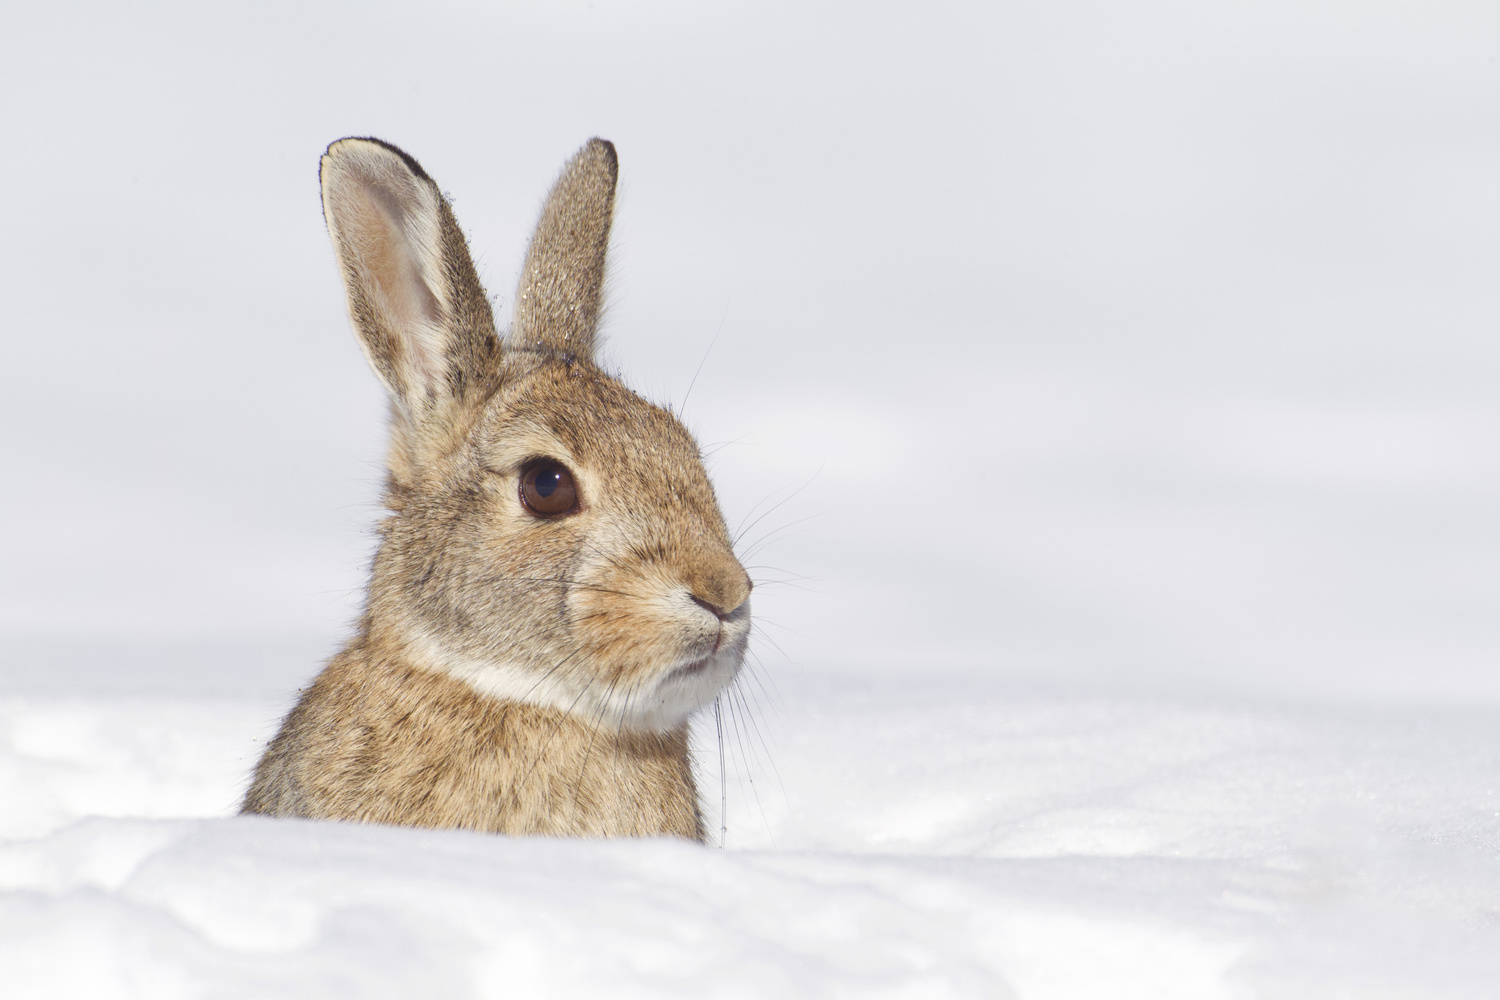 Eastern Cottontail - After the Blizzard by Tom Reichner